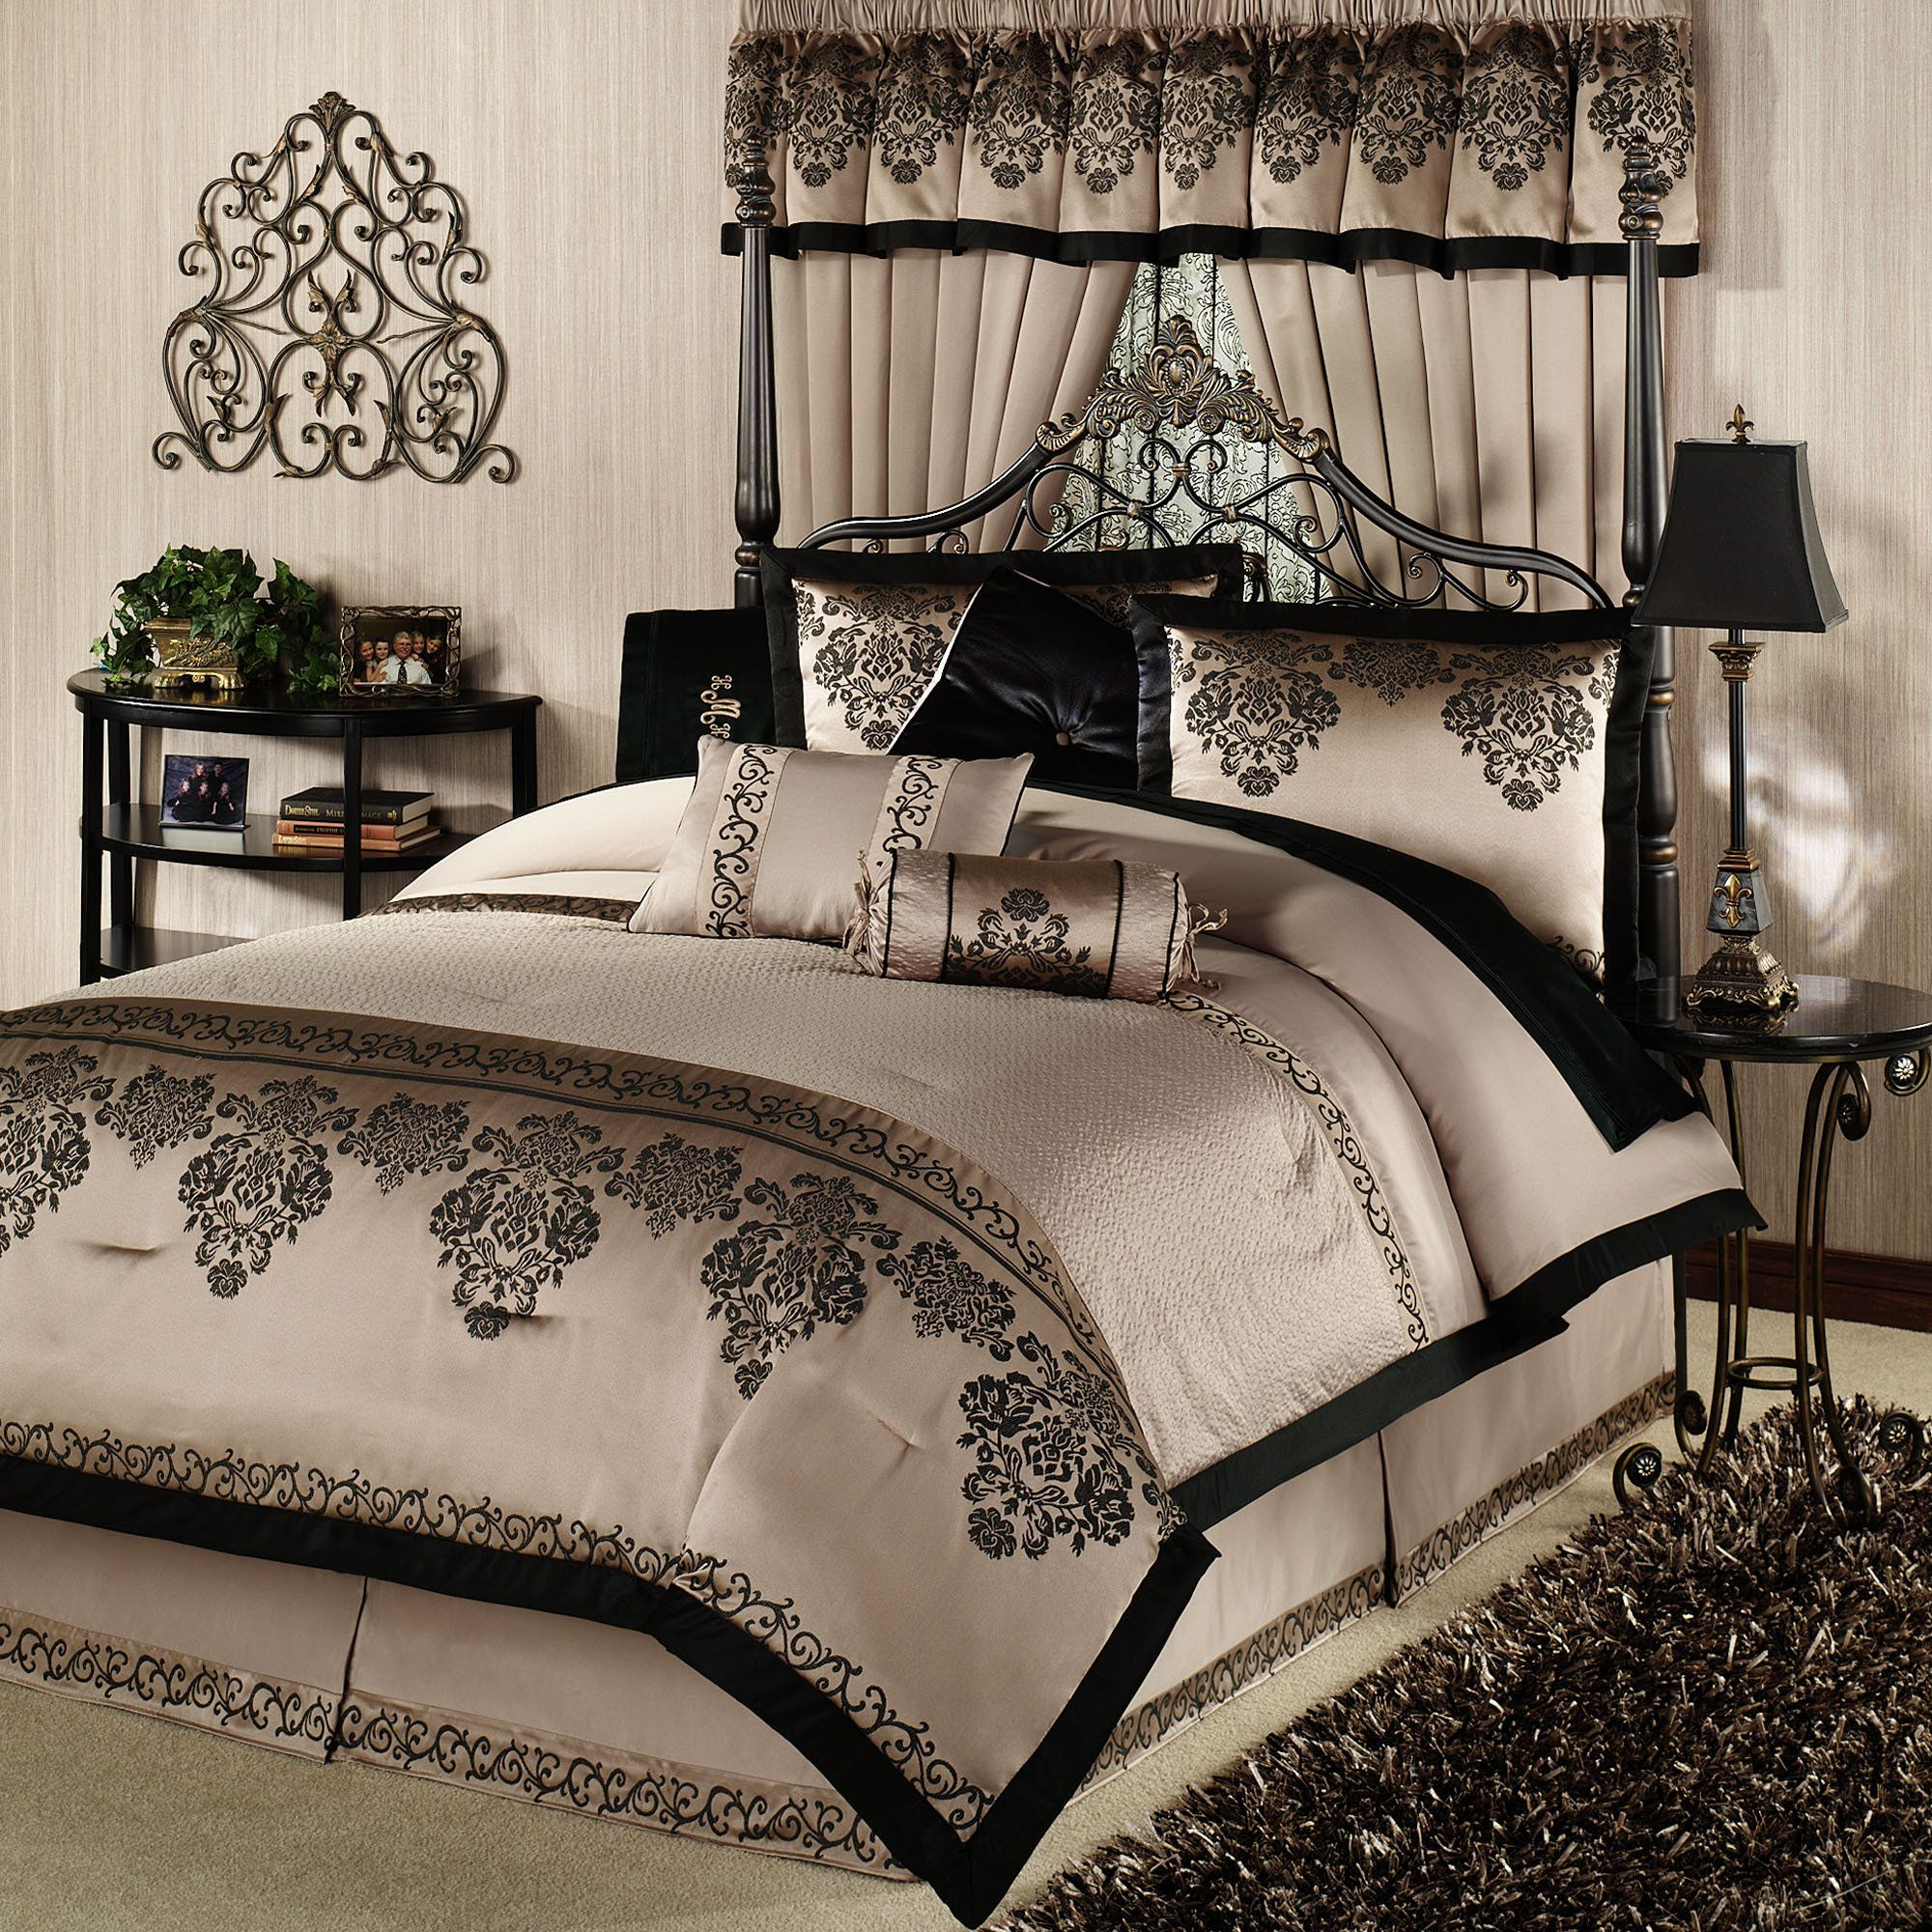 King Size Bed Comforters Sets